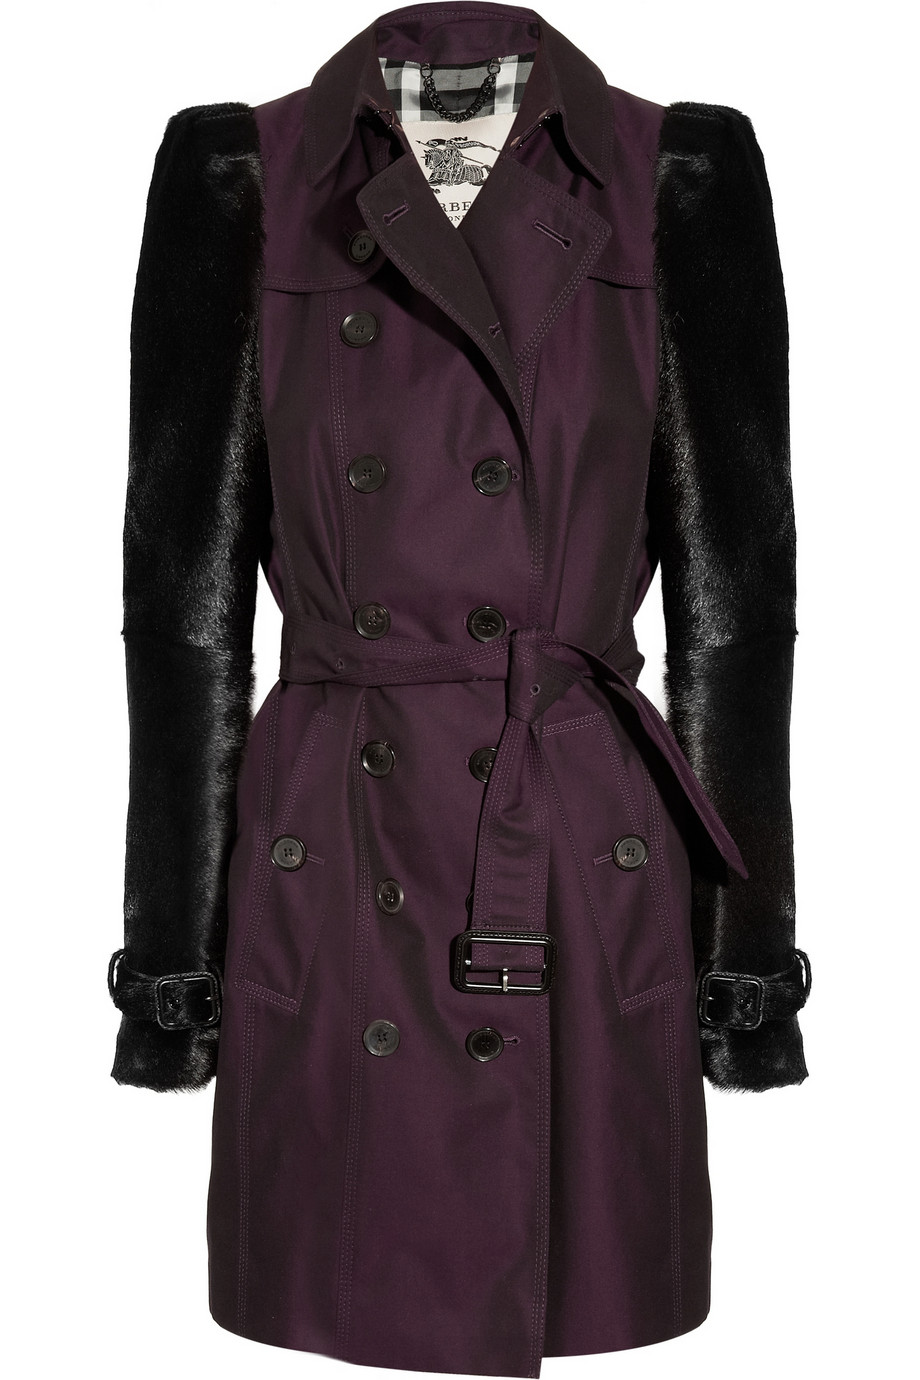 burberry midlength cottongabardine and goat hair trench coat in purple plum lyst. Black Bedroom Furniture Sets. Home Design Ideas